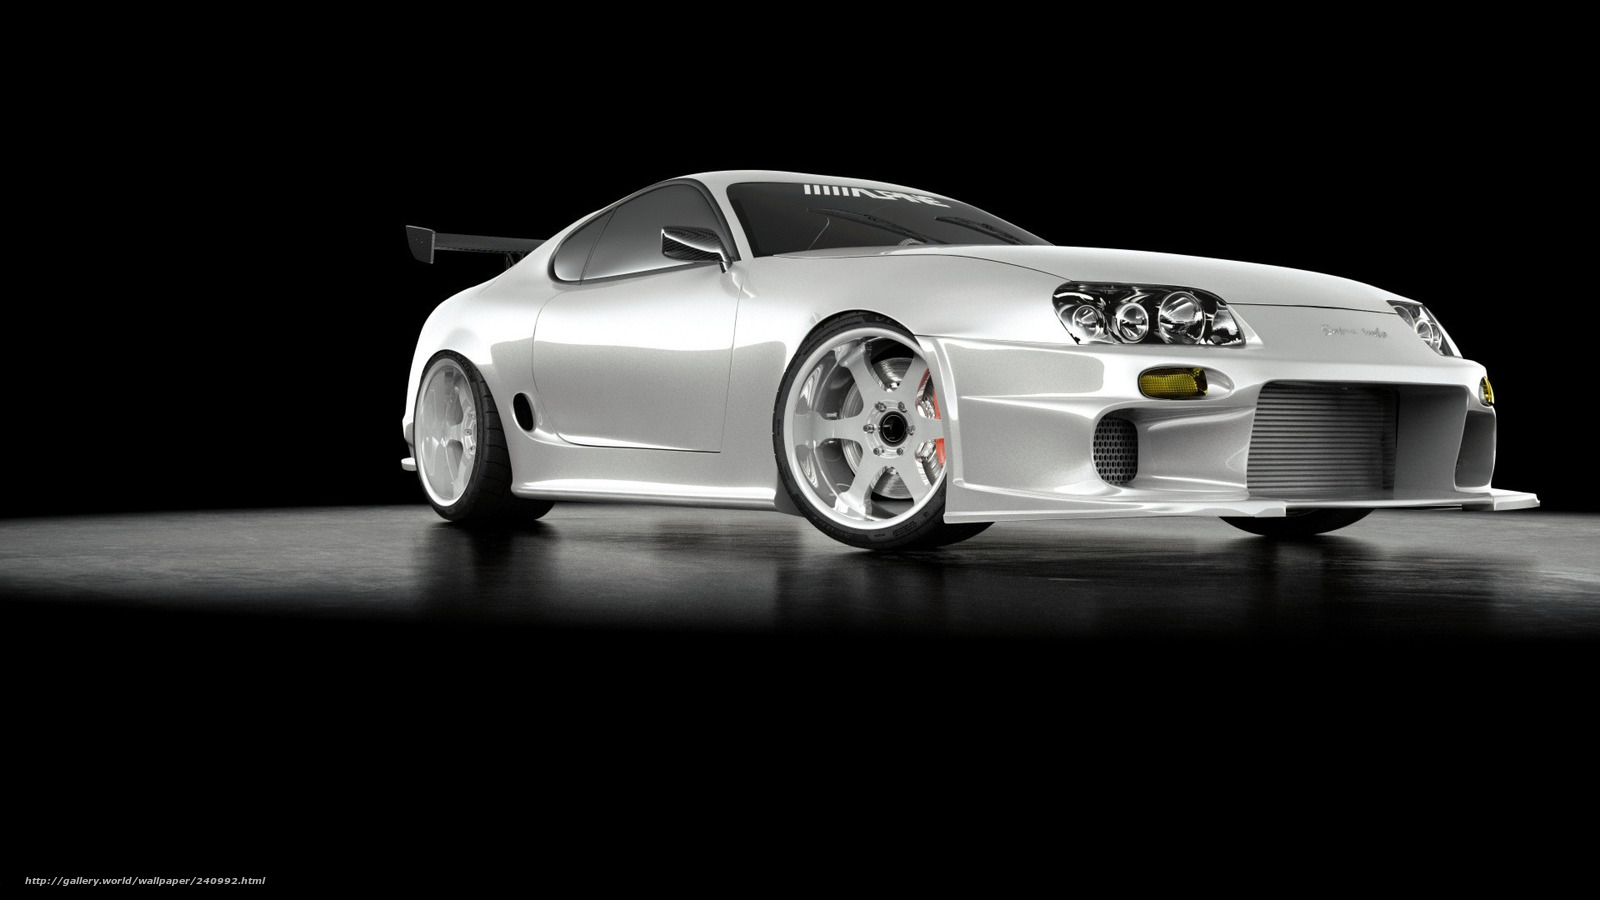 st.gdefon.ru/wallpapers_original/wallpapers/24099...a_supra_twin_turbo ...